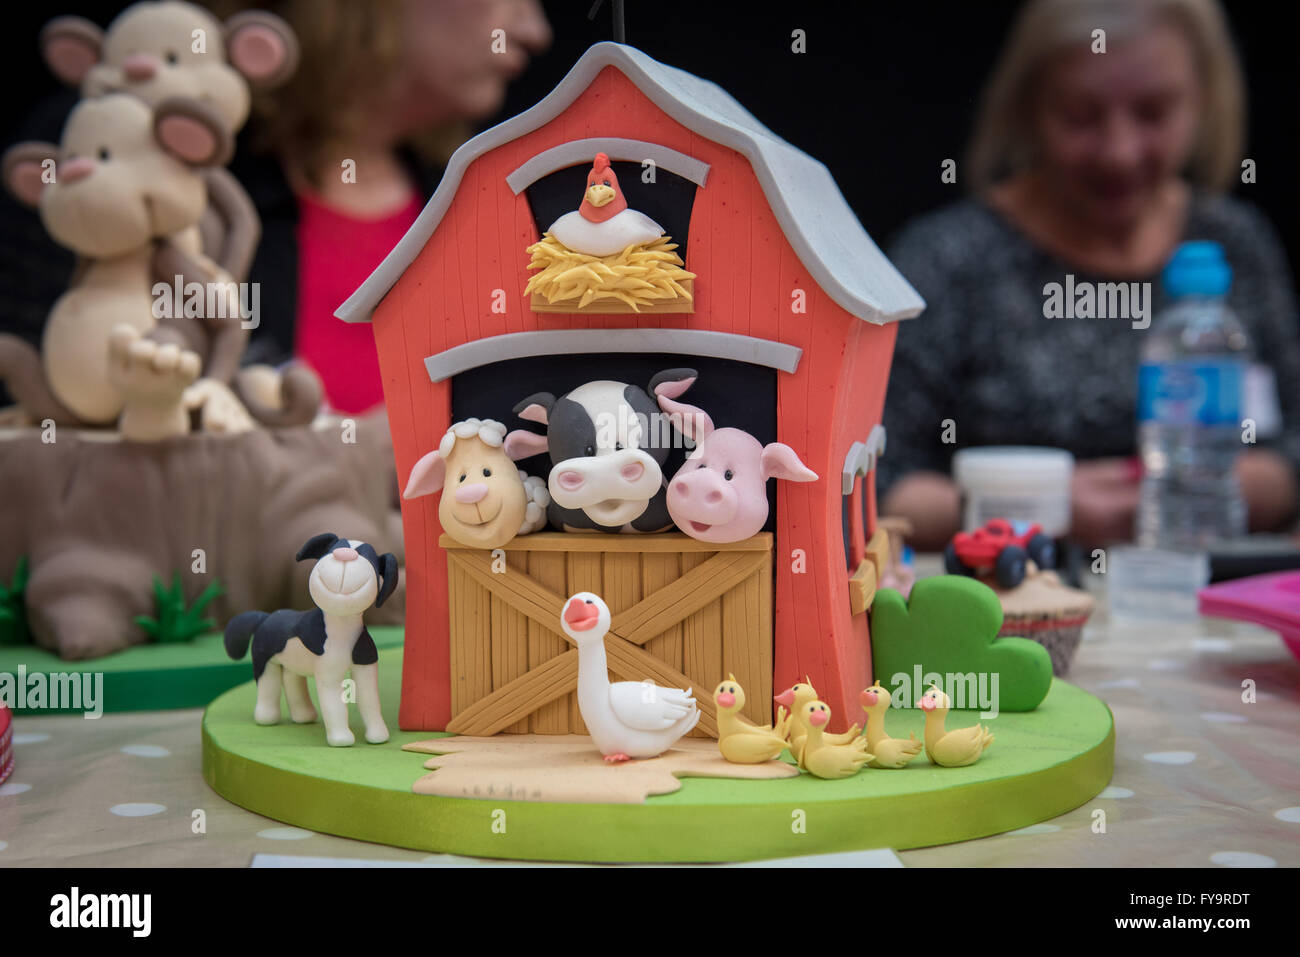 Animal Farm birthday cake at Cake International   The ...